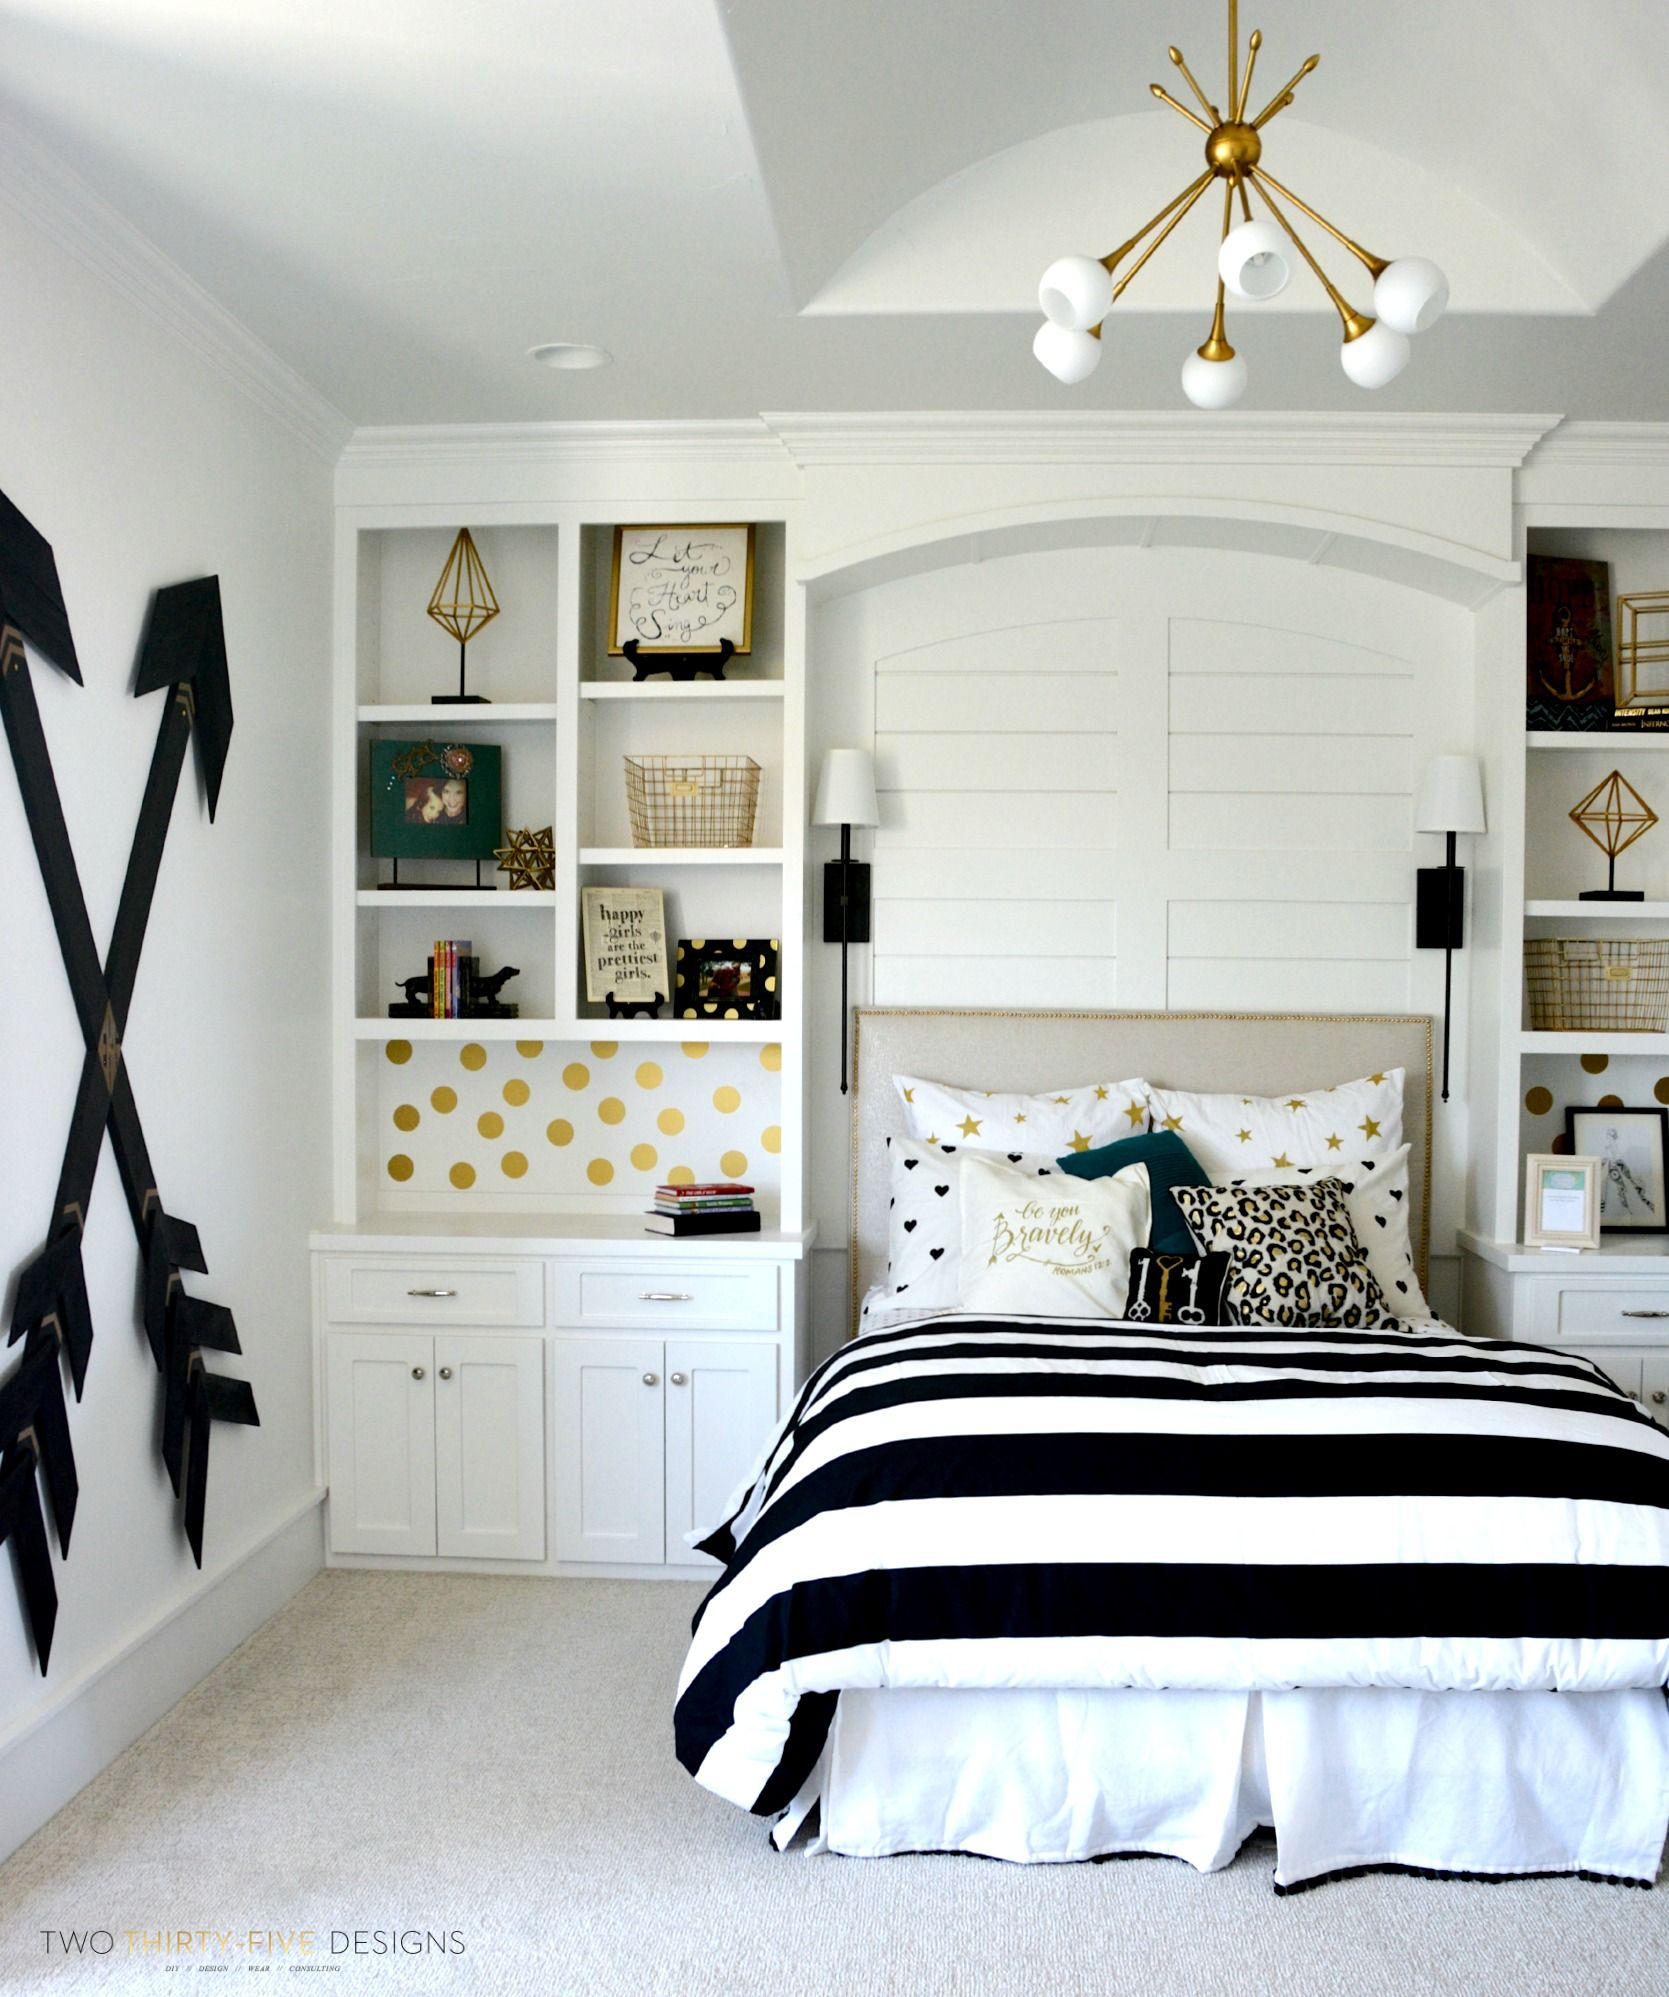 Bedroom designer for girls - Pottery Barn Teen Girl Bedroom With Wooden Wall Arrows By Two Thirty Five Designs